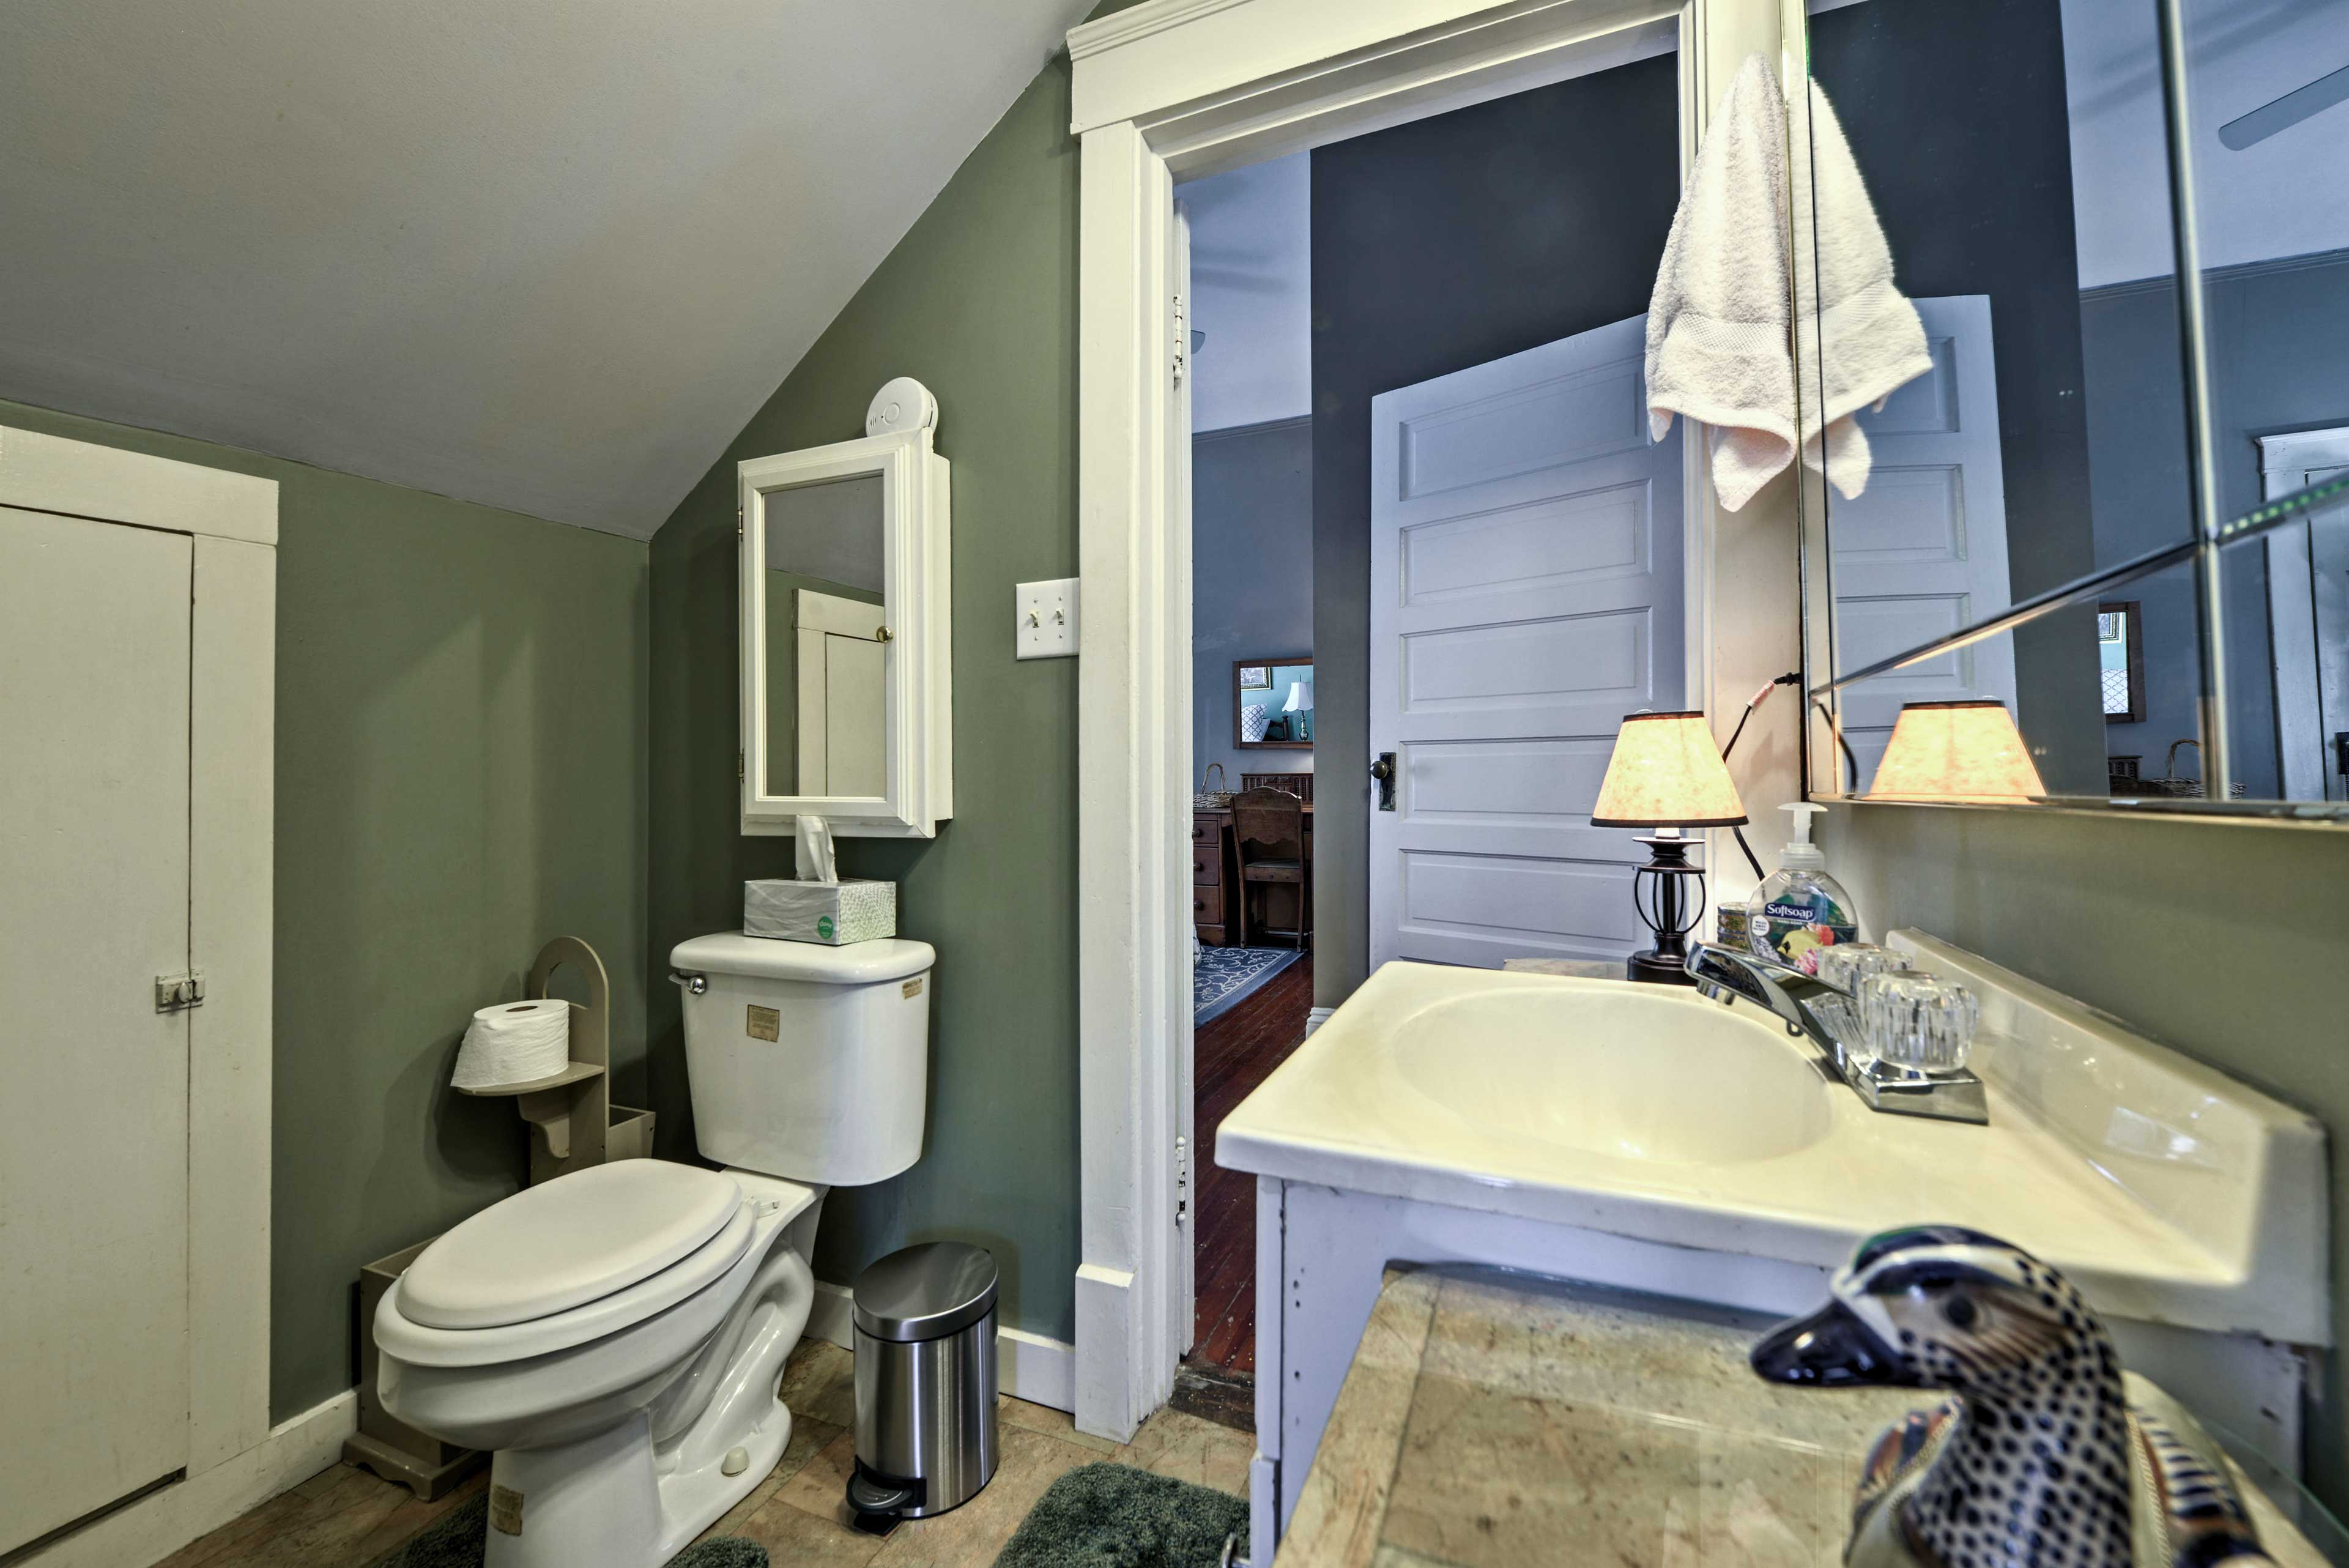 The half bathroom is conveniently connected to the second bedroom.